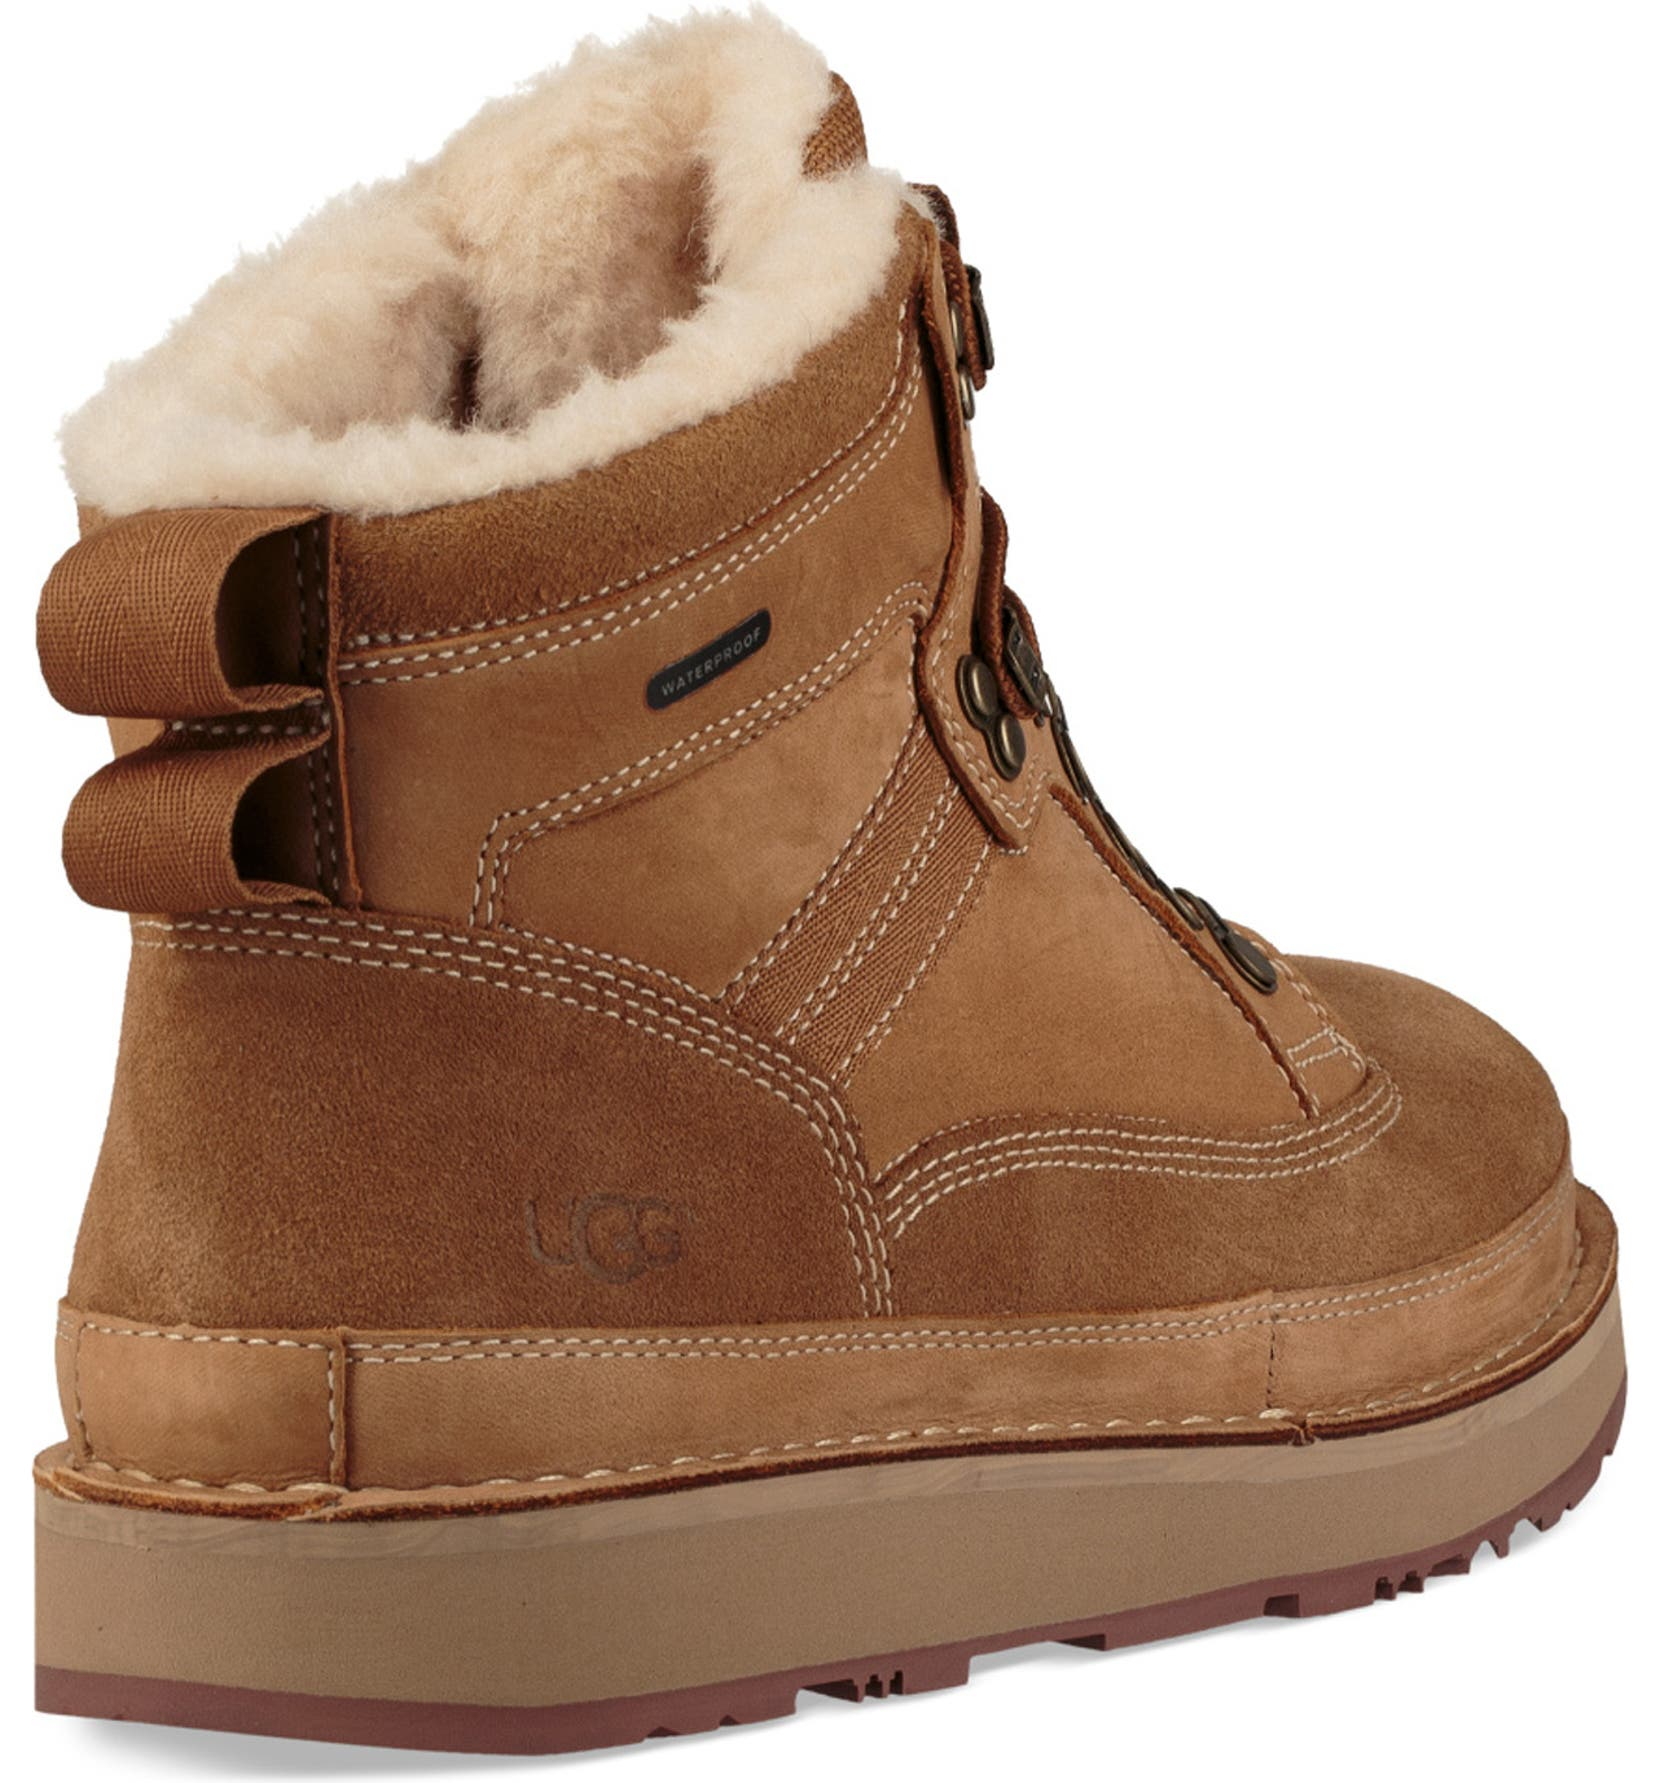 Ugg Avalanche Hiker Suede & Shearling Boots